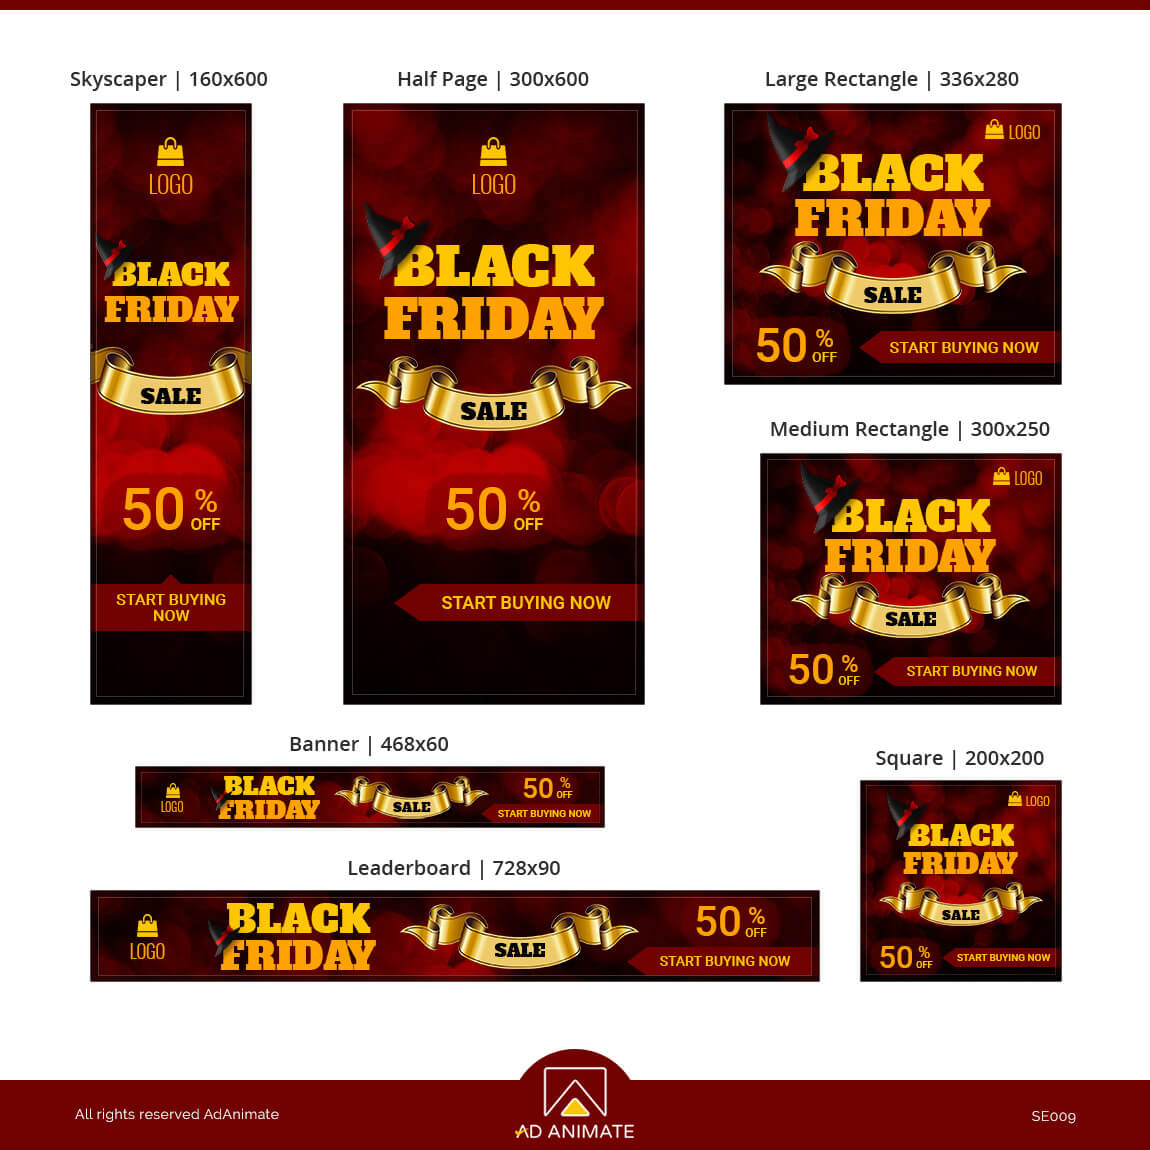 Black Friday Sale ad banner design